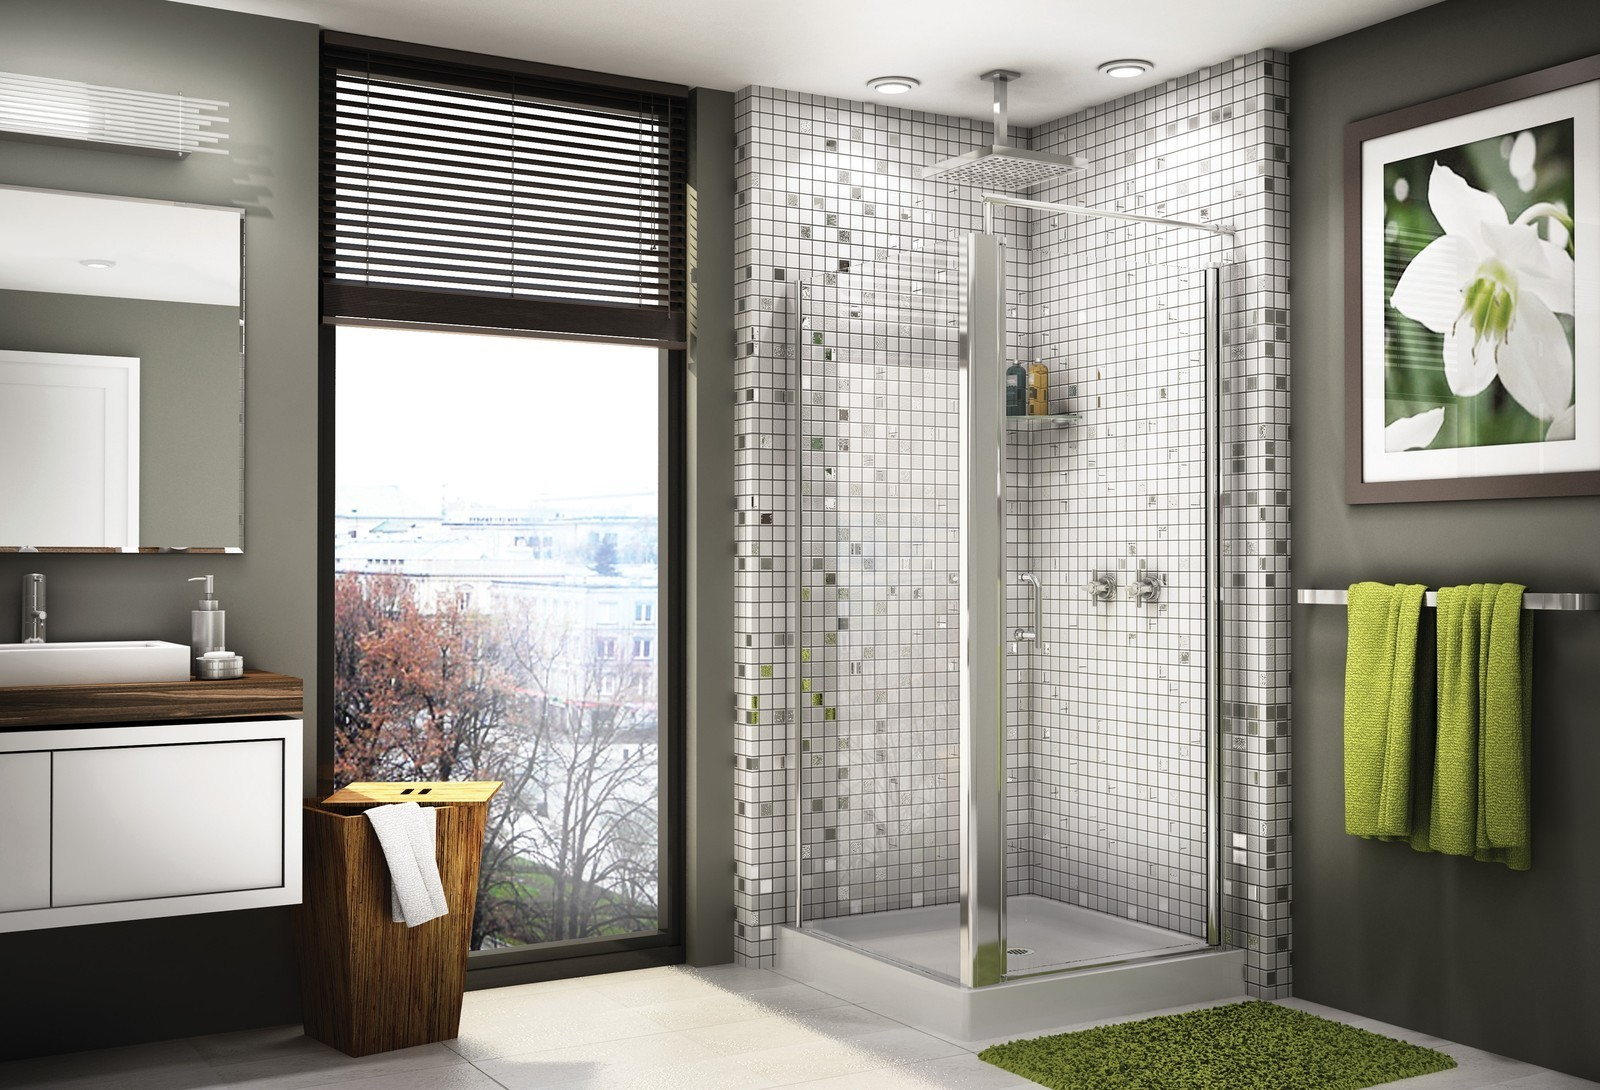 Mosaic Tile Shower Ideas: 30 Cool Pictures Of Tiled Showers With Glass Doors Esign